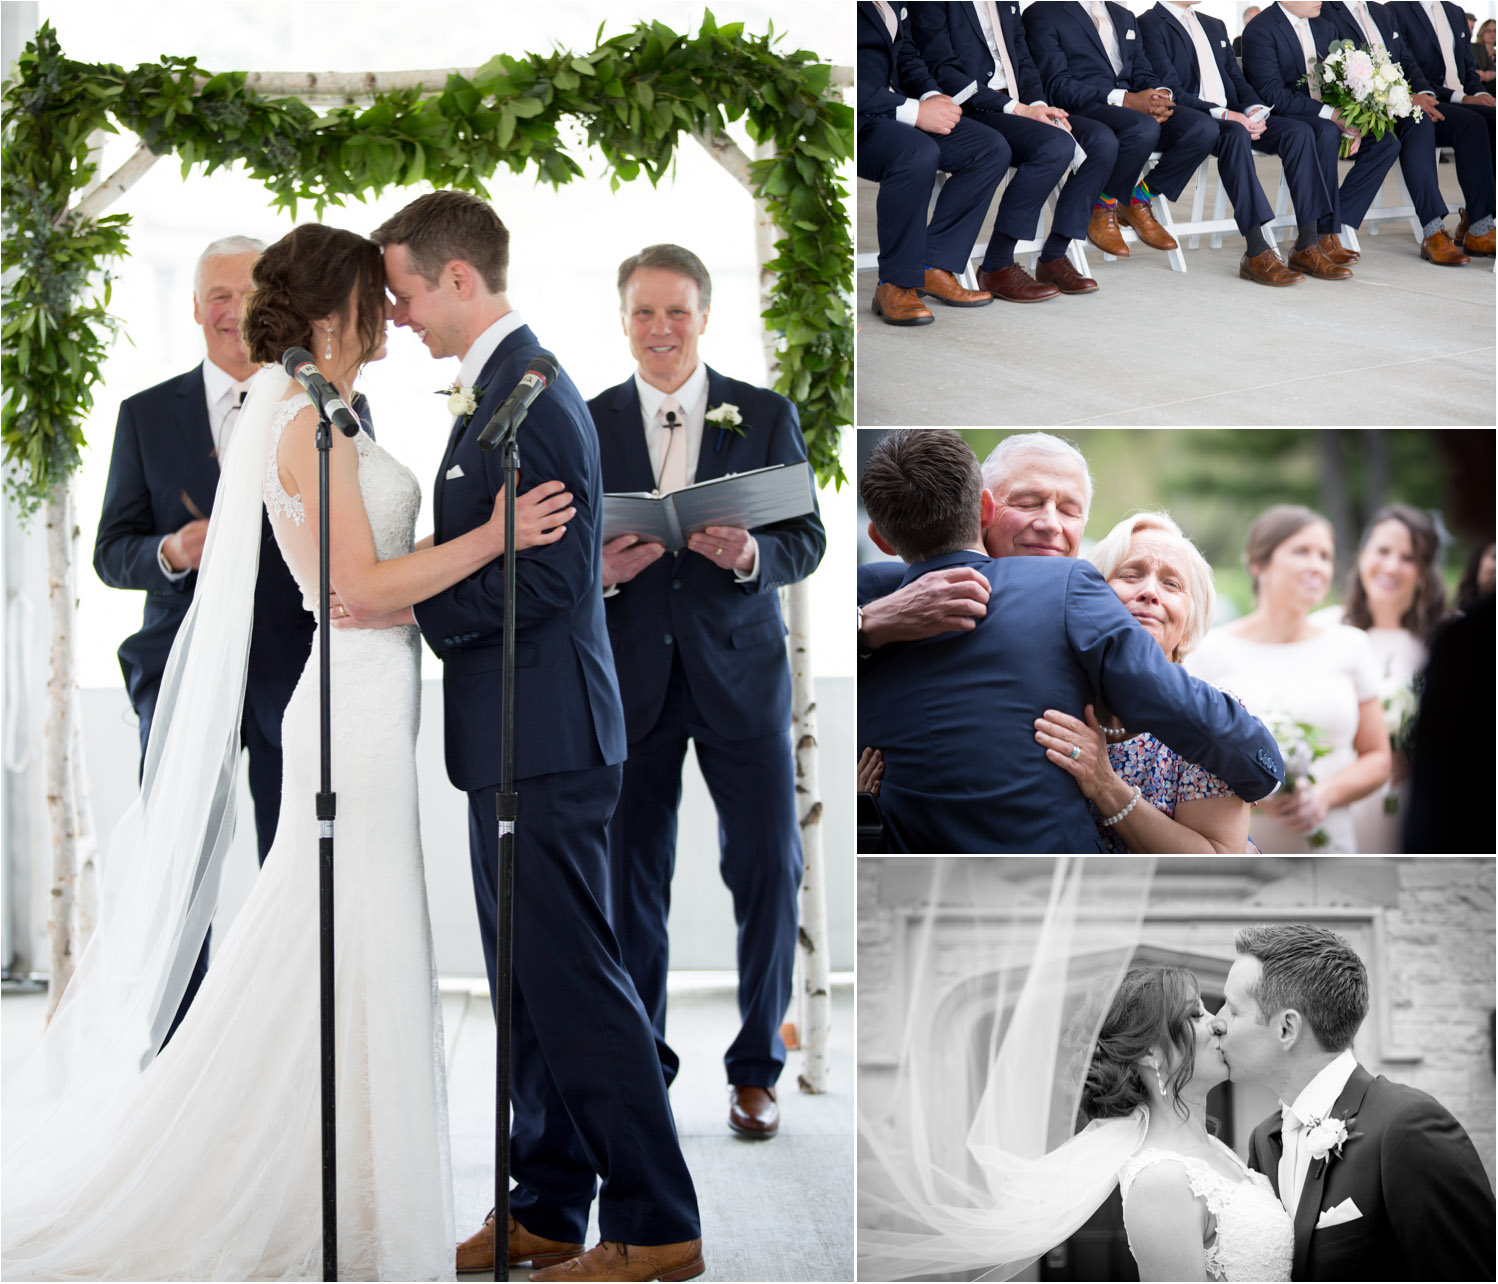 17-bishops-bay-country-club-wedding-ceremony-first-kiss-mother-father-of-the-groom-group-hug-mahonen-photography.jpg